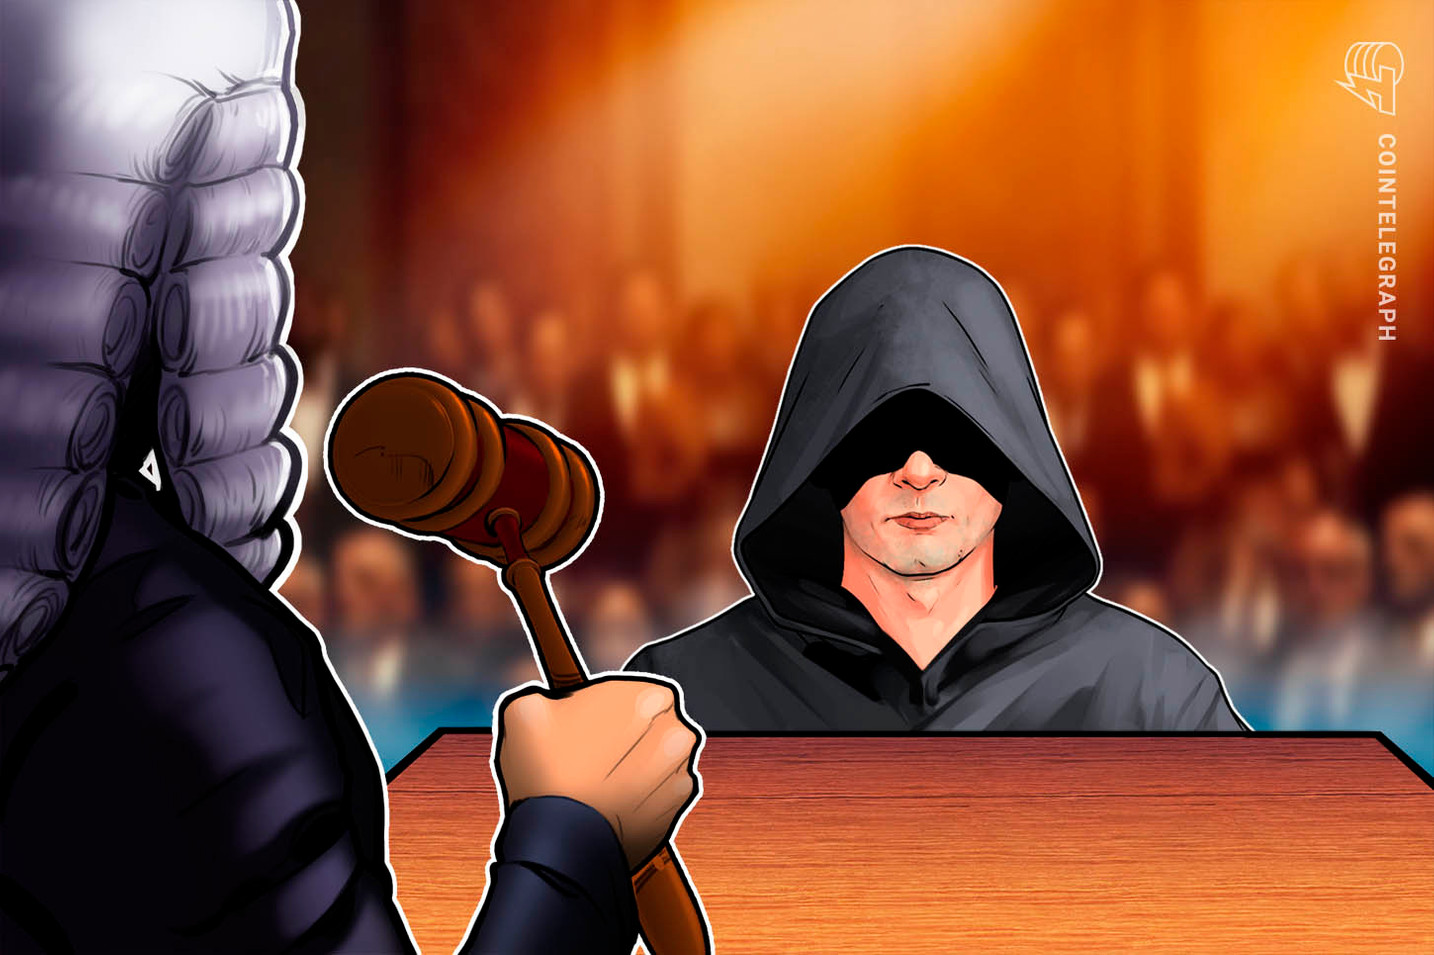 SEC Charges California Resident for Alleged $26 Million Crypto Pyramid Scheme